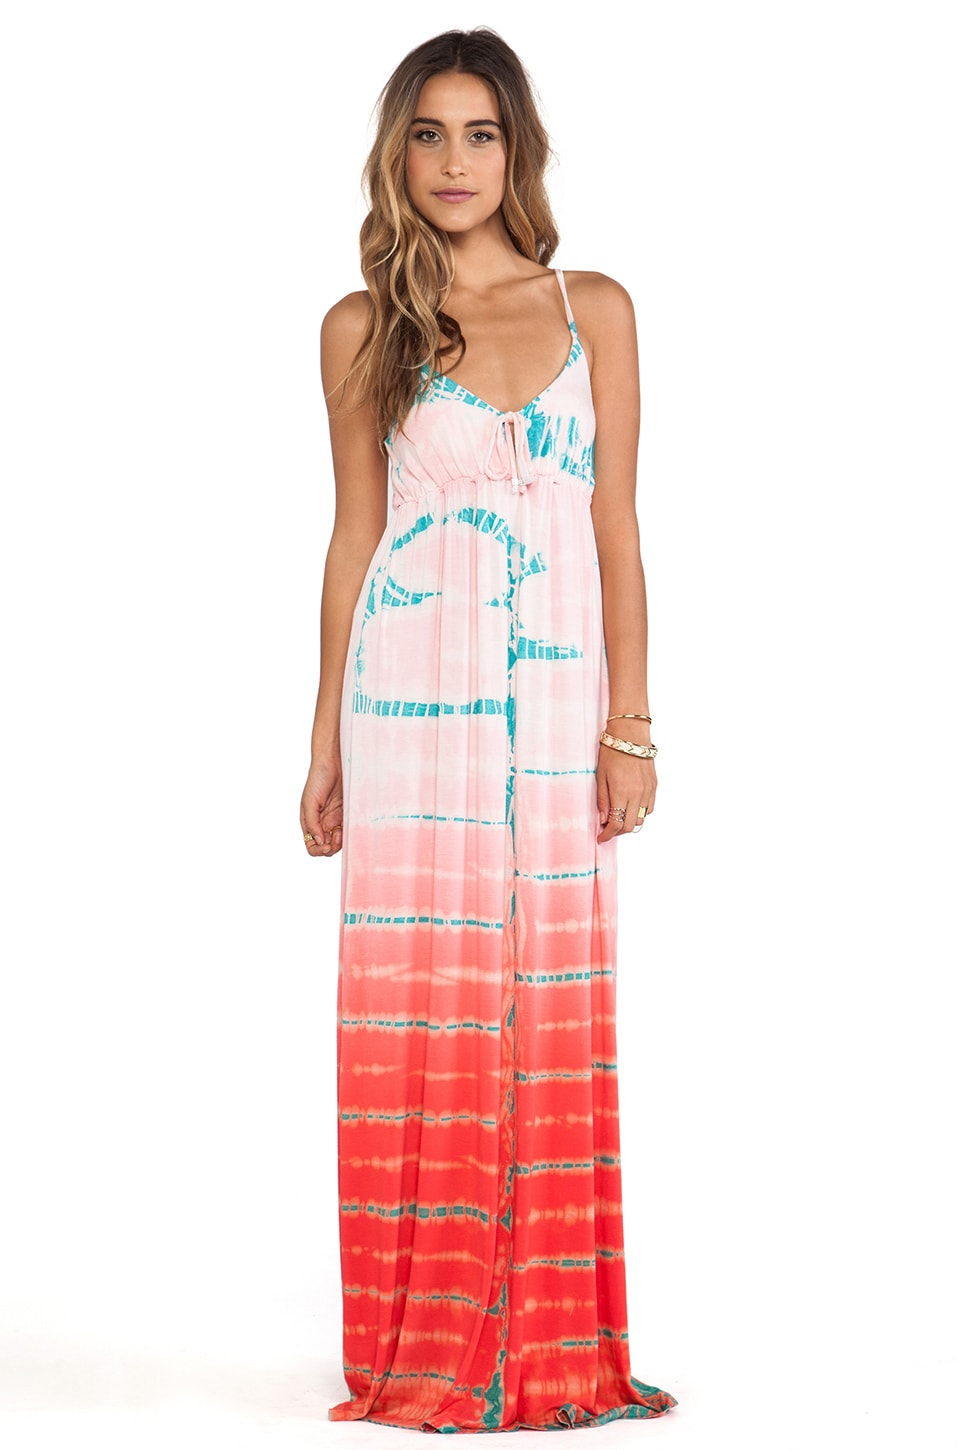 Gypsy 05 Empire Spaghetti Tie Maxi Dress in Kiss & Teal